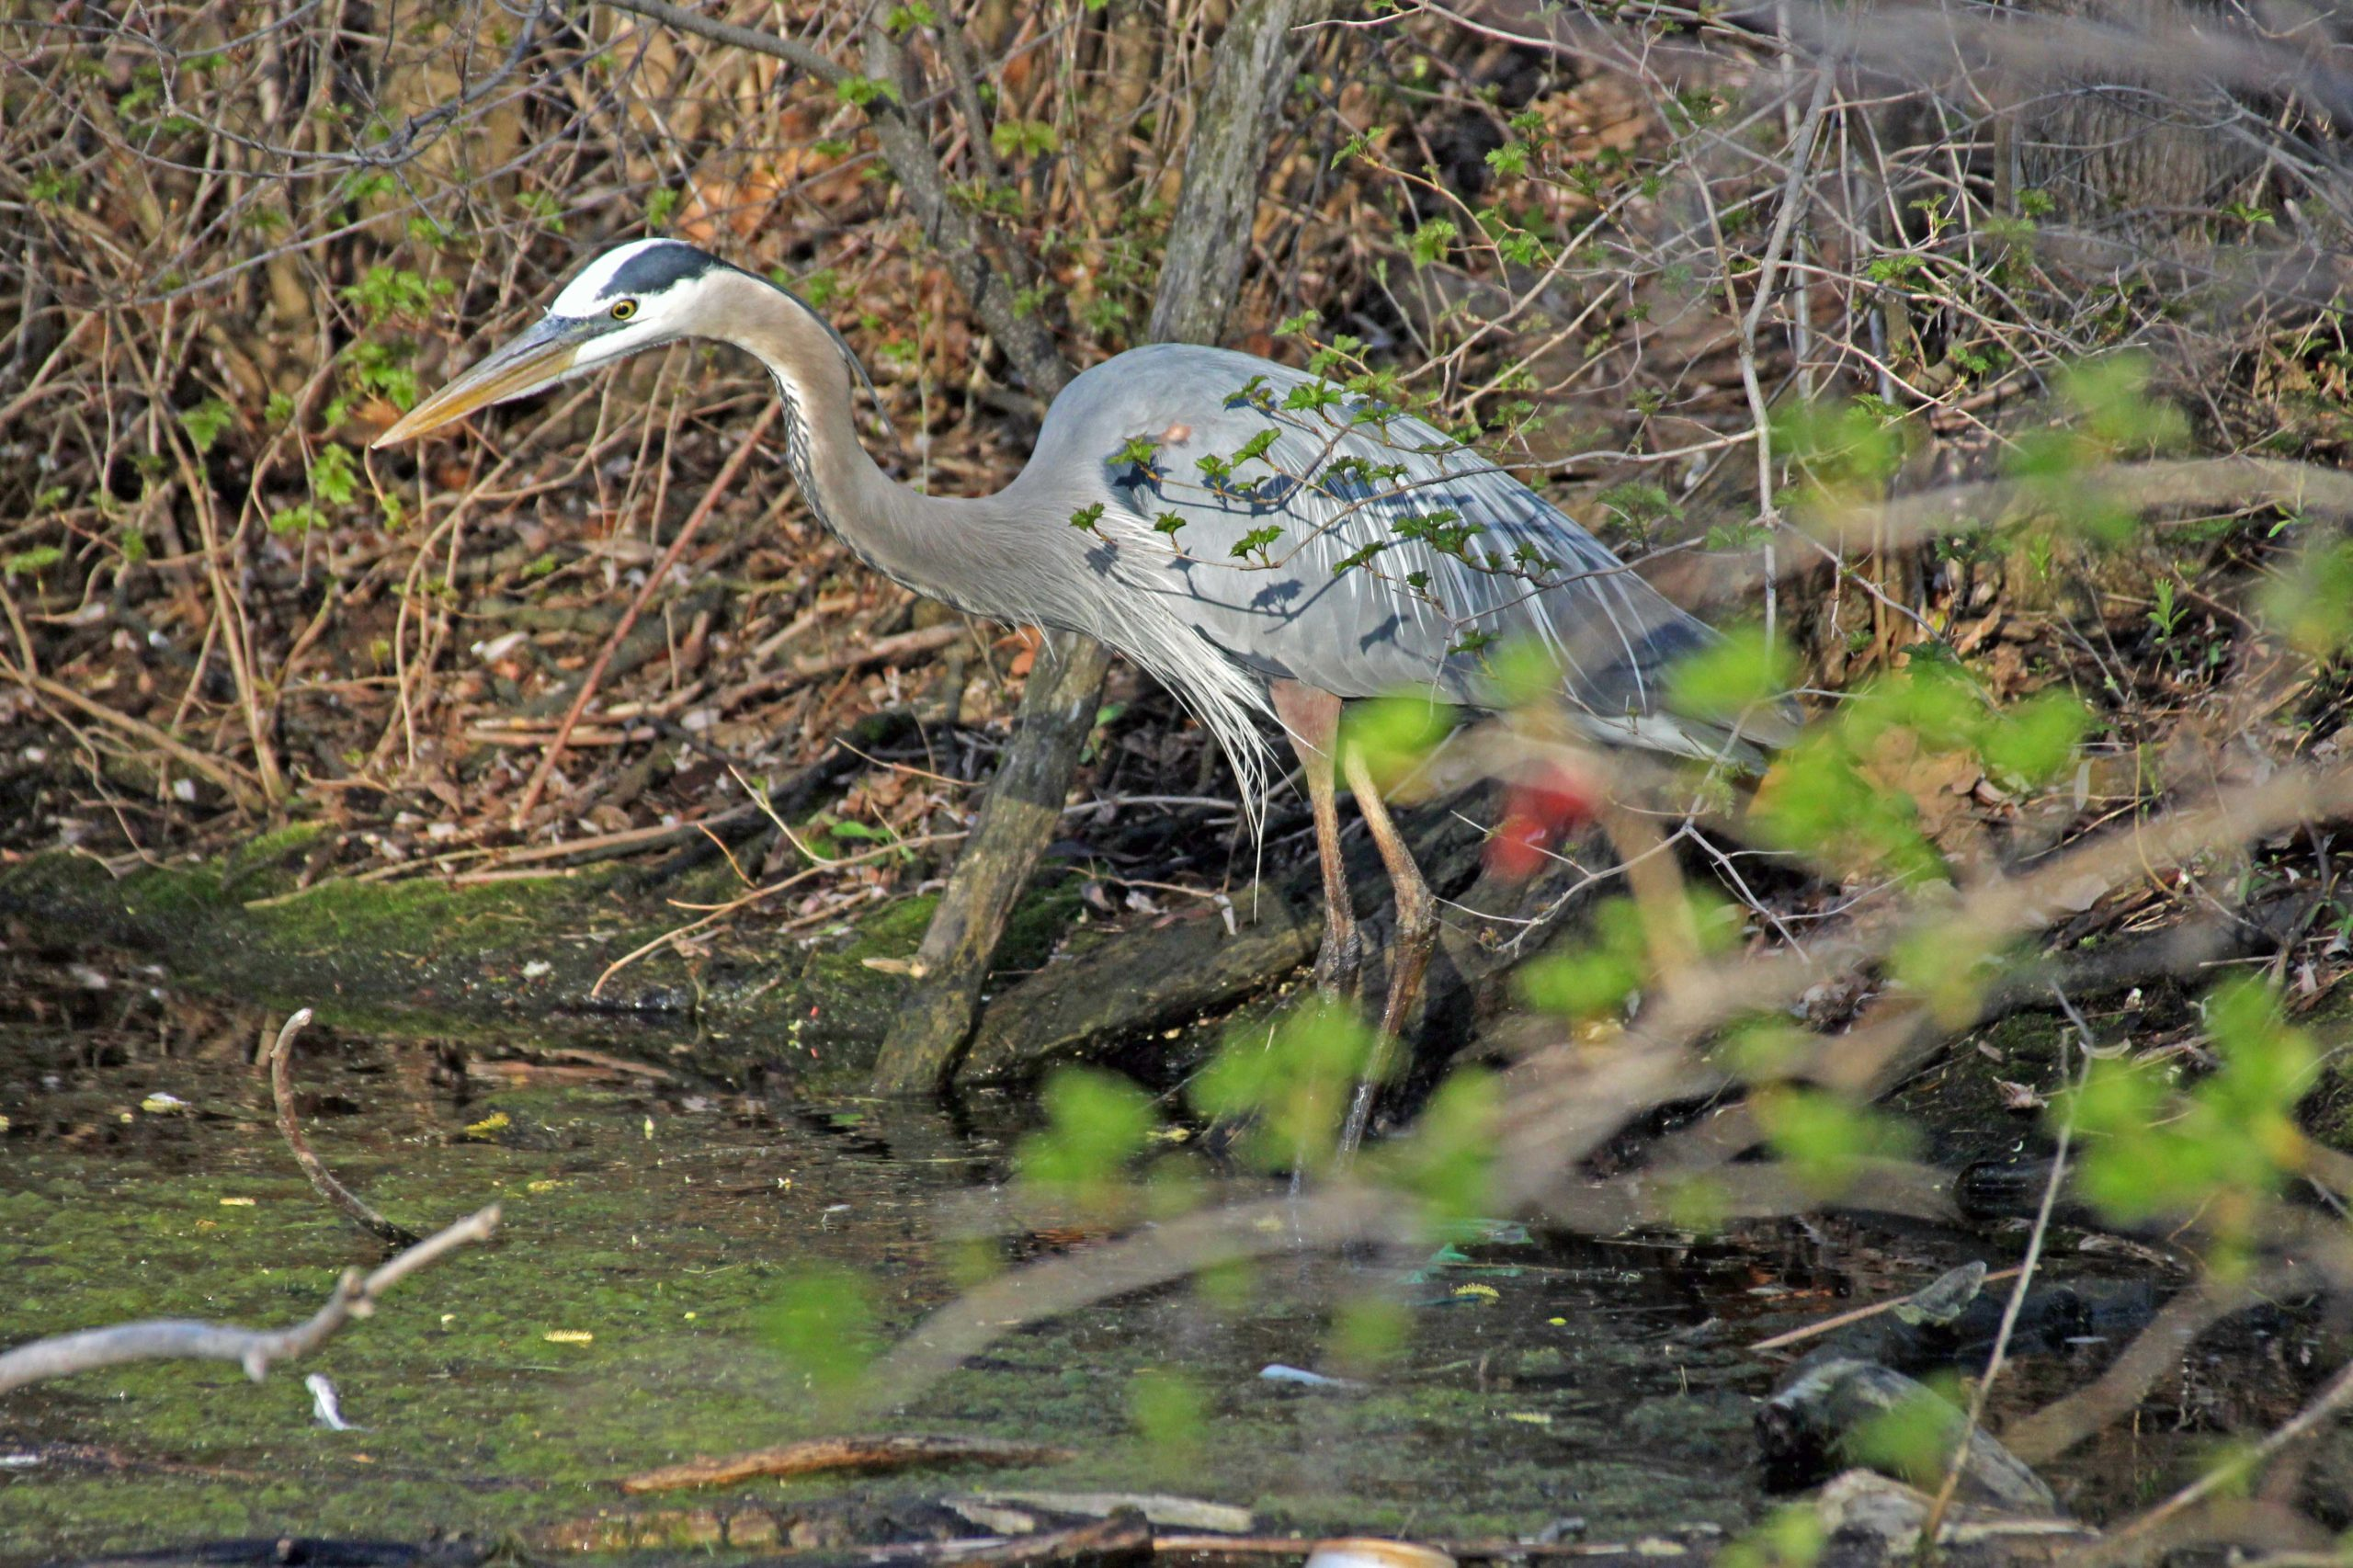 A Great Blue Heron hunts for fish